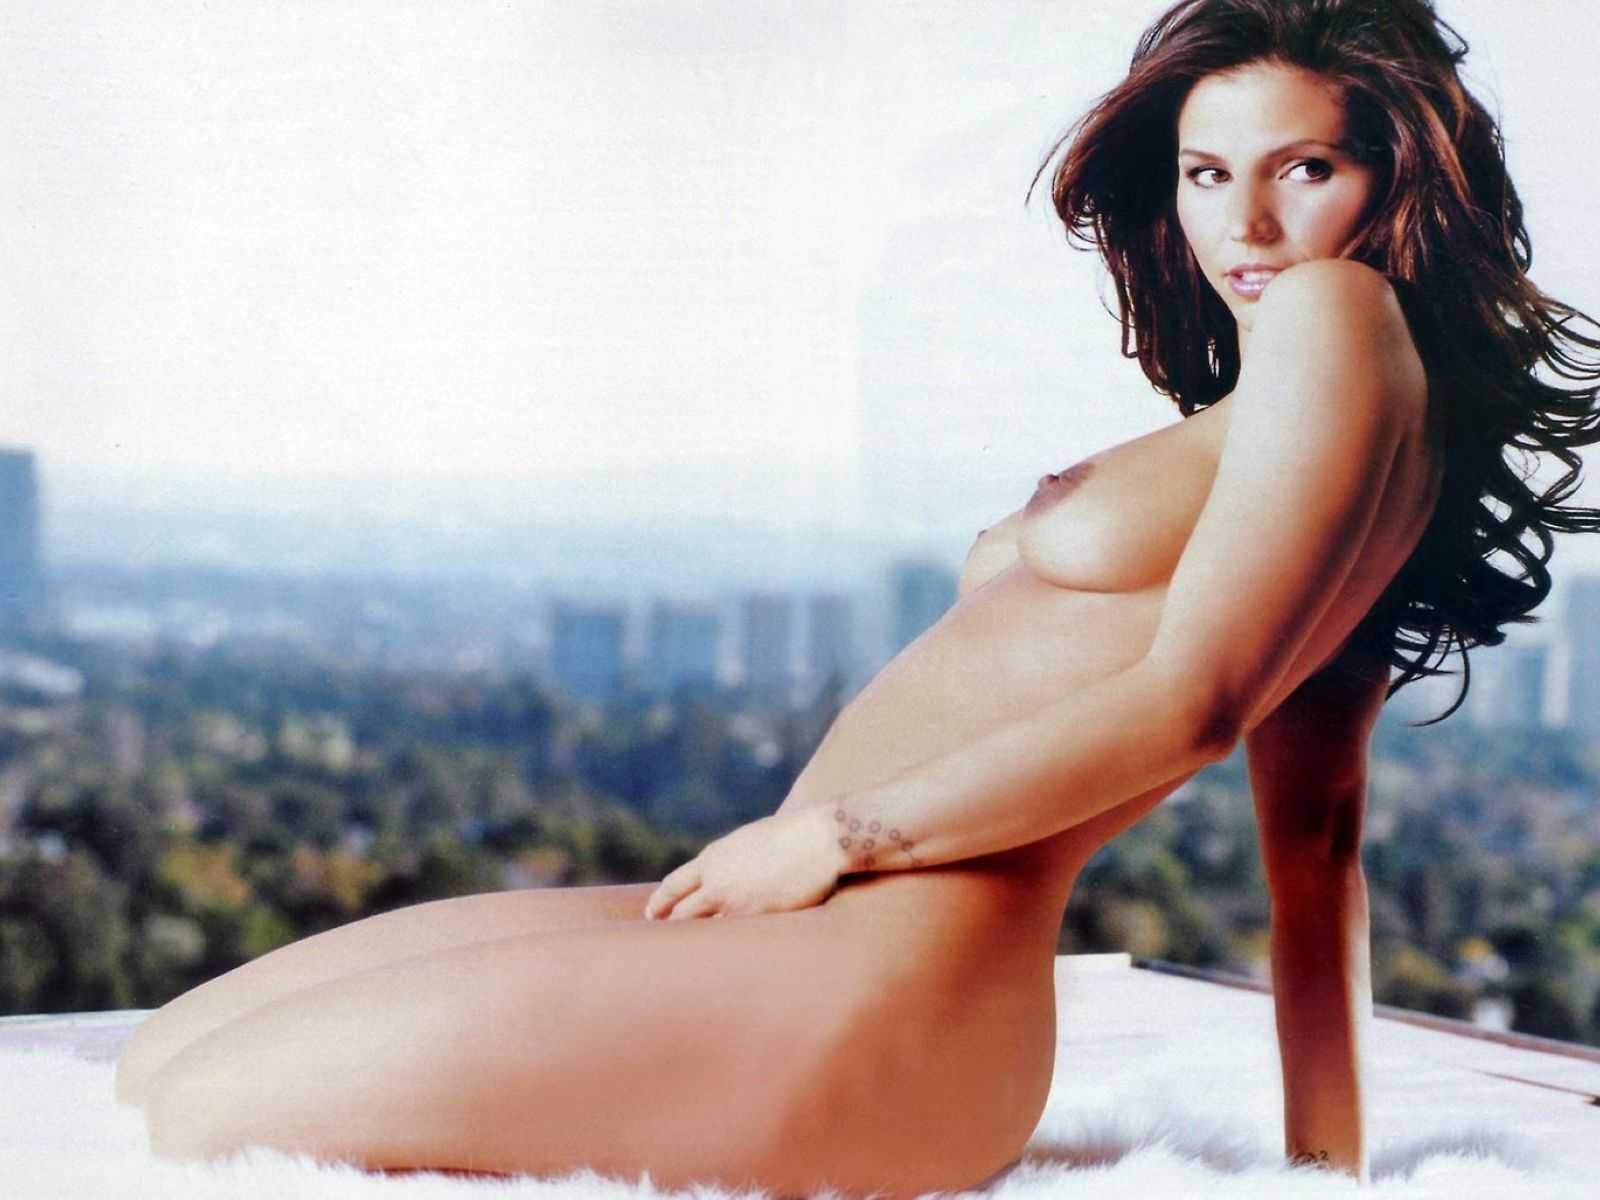 Charisma carpenter public nudes photos 245